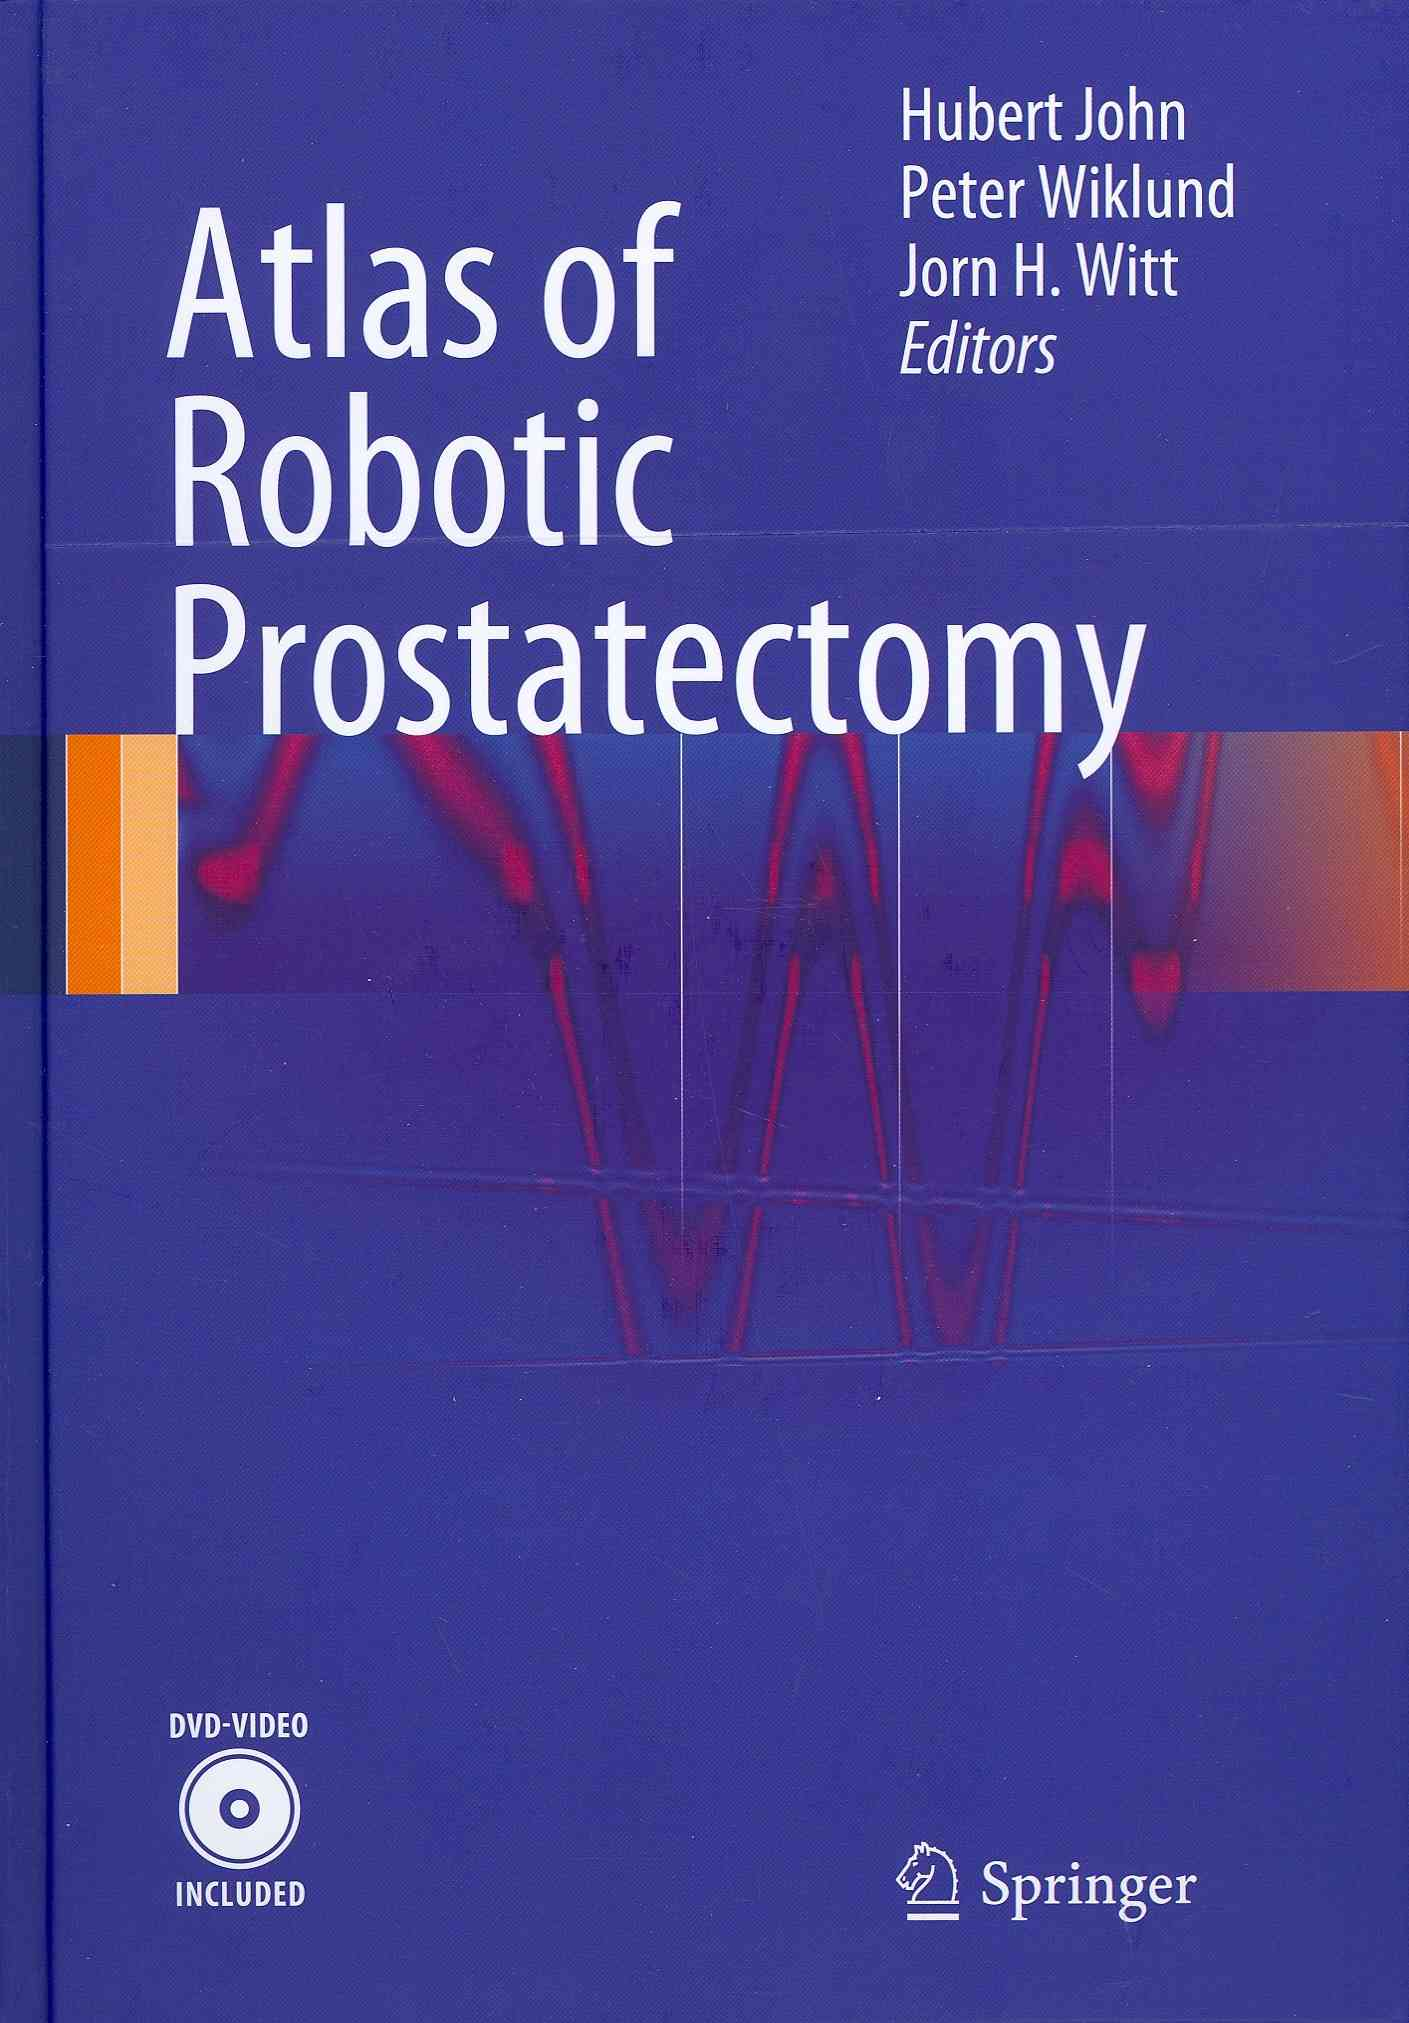 Atlas of Robotic Prostatectomy By John, Hubert (EDT)/ Wiklund, Peter (EDT)/ Witt, Jorn H. (EDT)